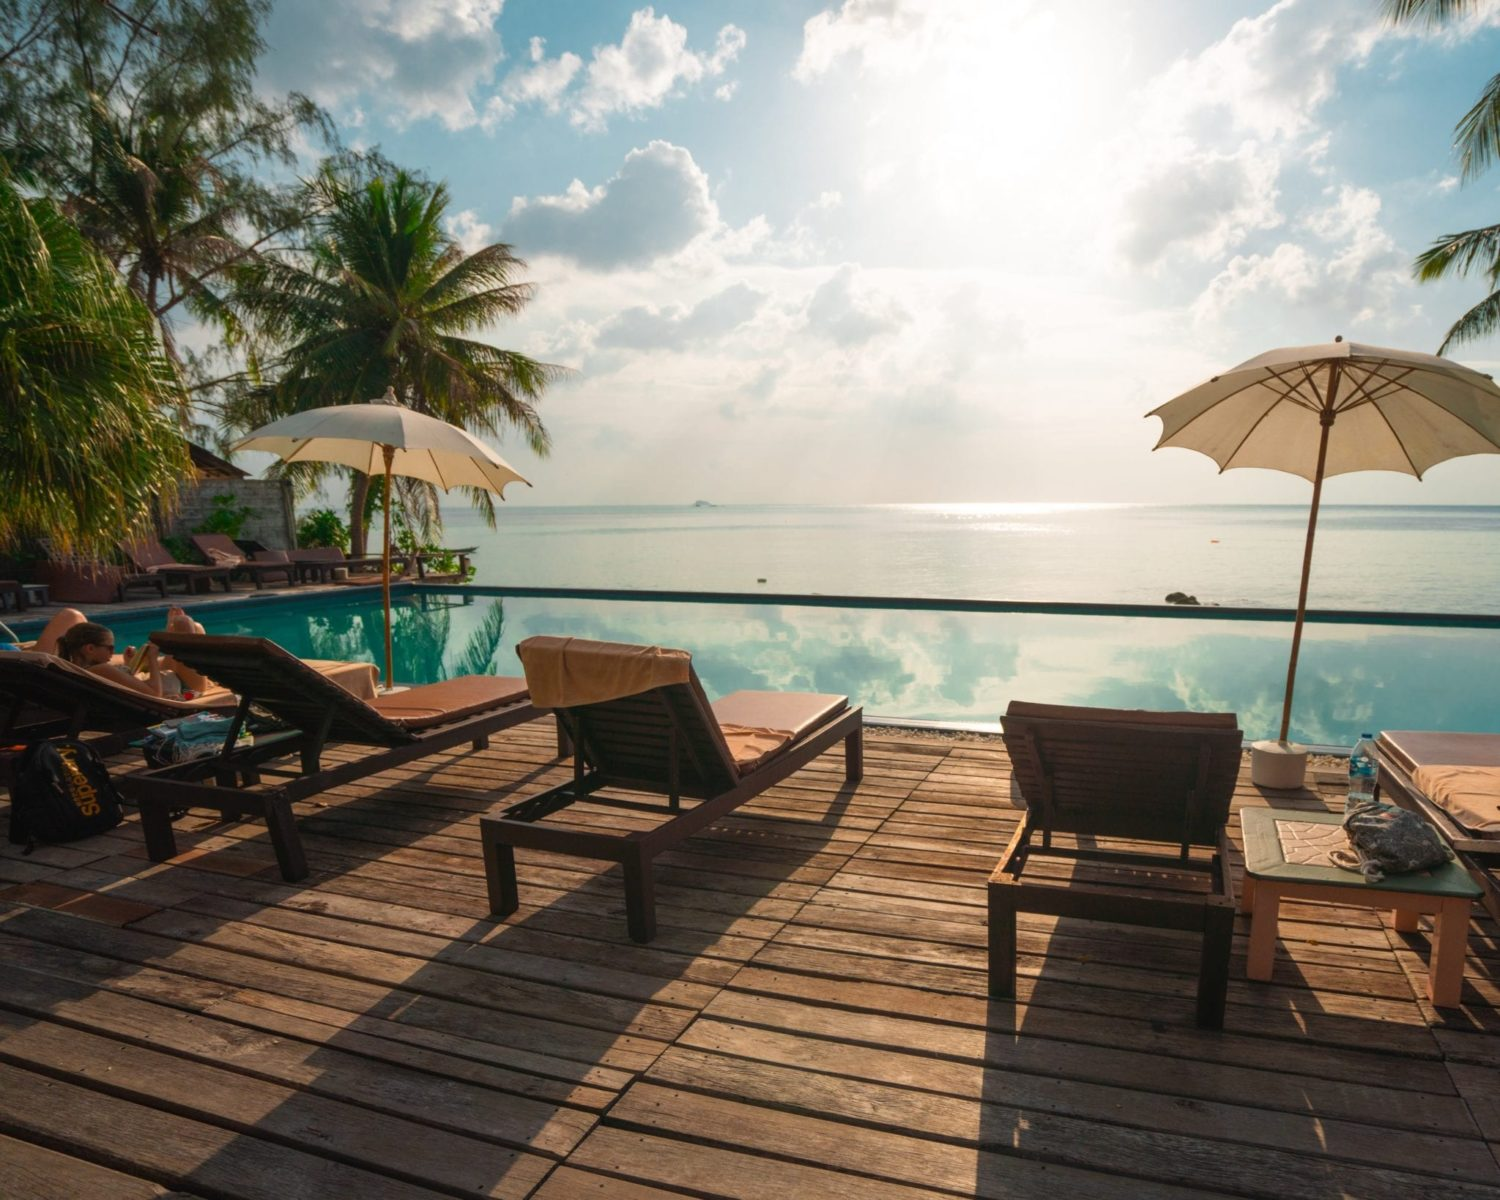 Beautiful cannabis resorts to consider for your next vacation